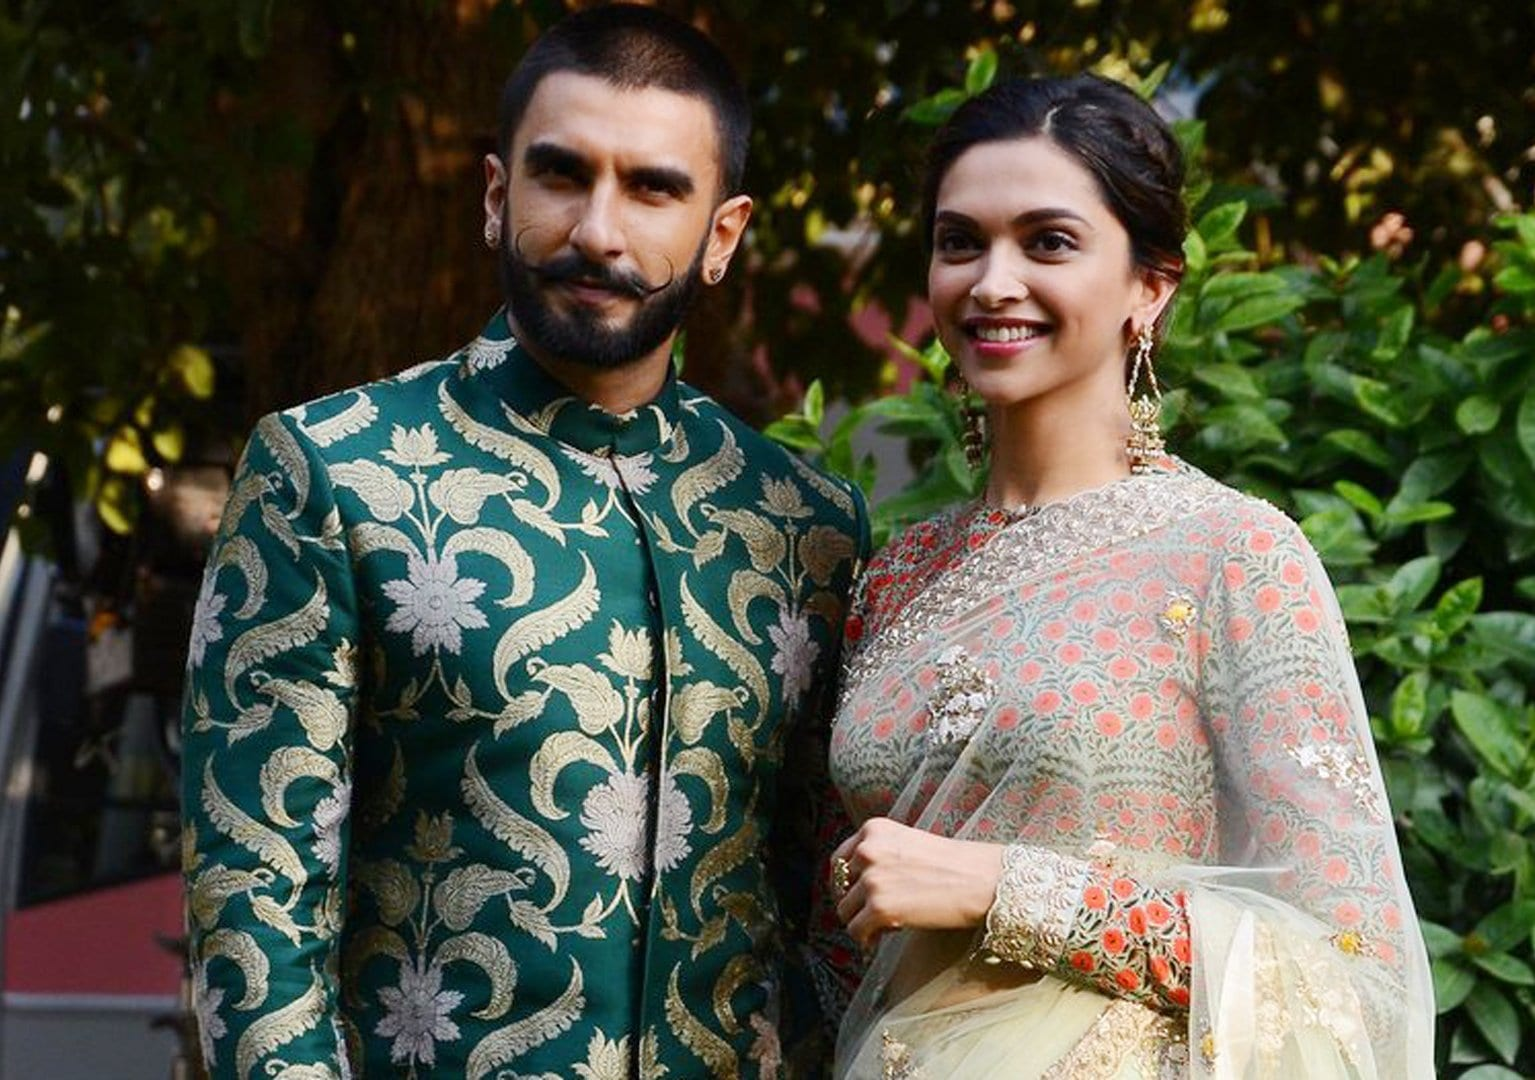 Deepika Padukone: Feels Great to Find Someone Who Puts You Before Himself